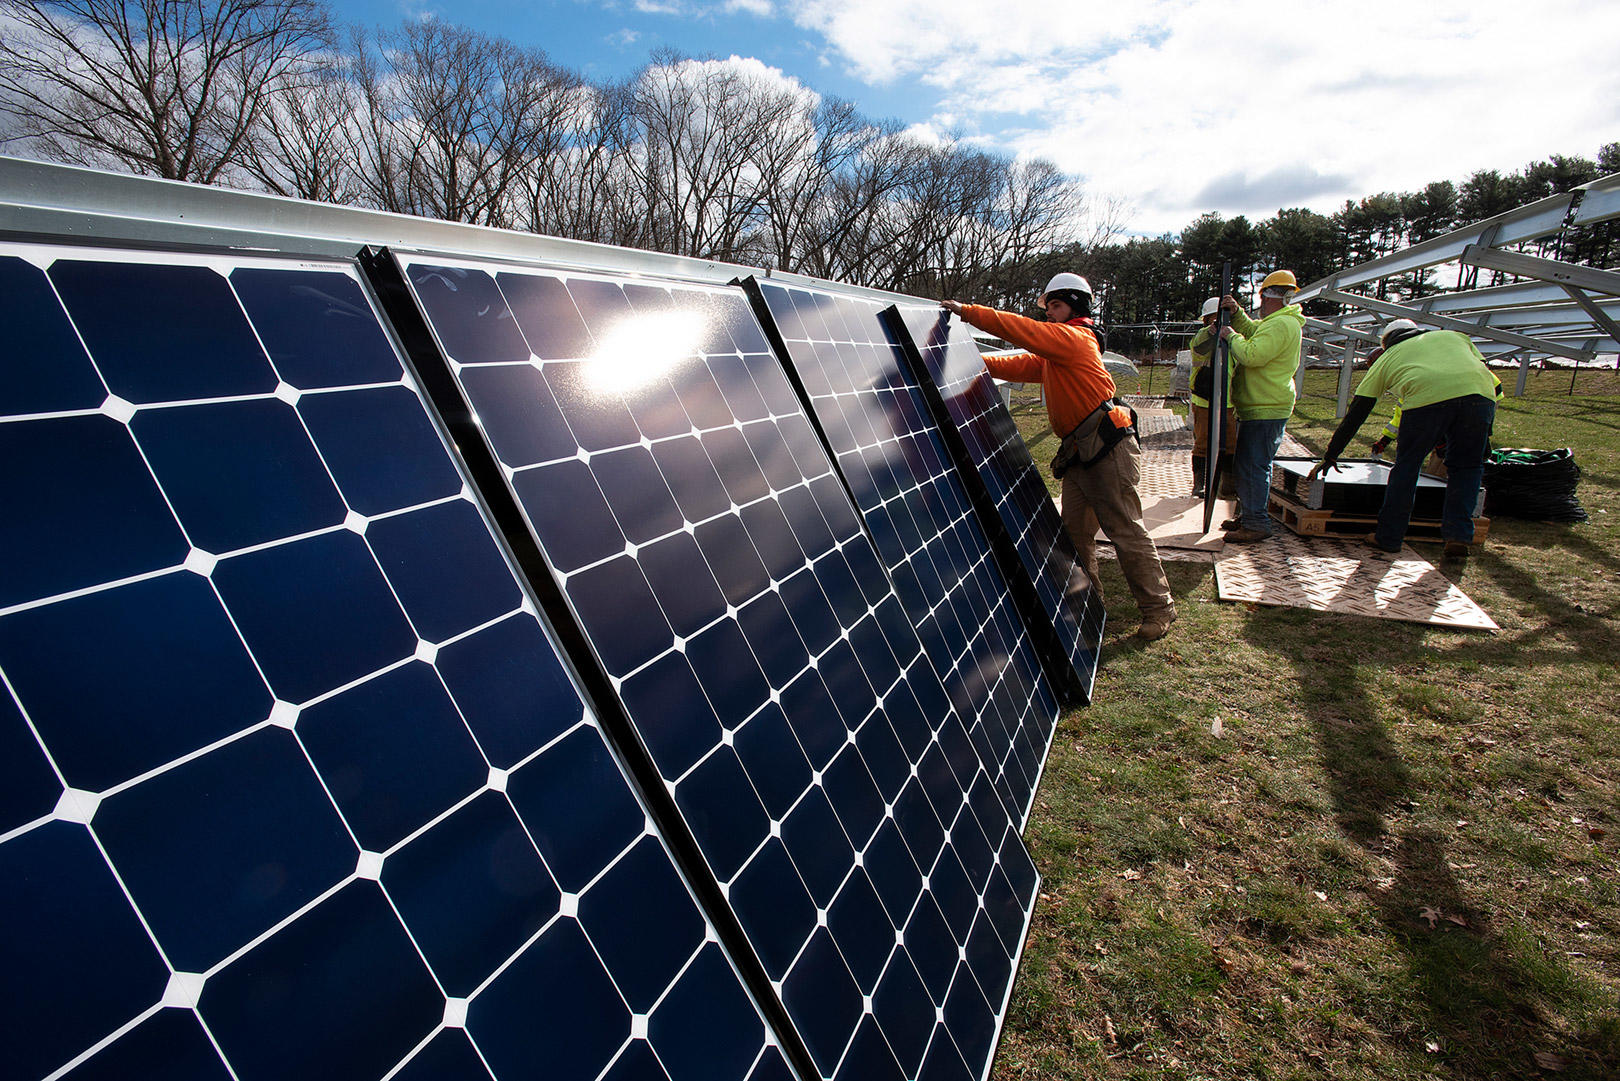 Solar installation at Arnold Arboretum